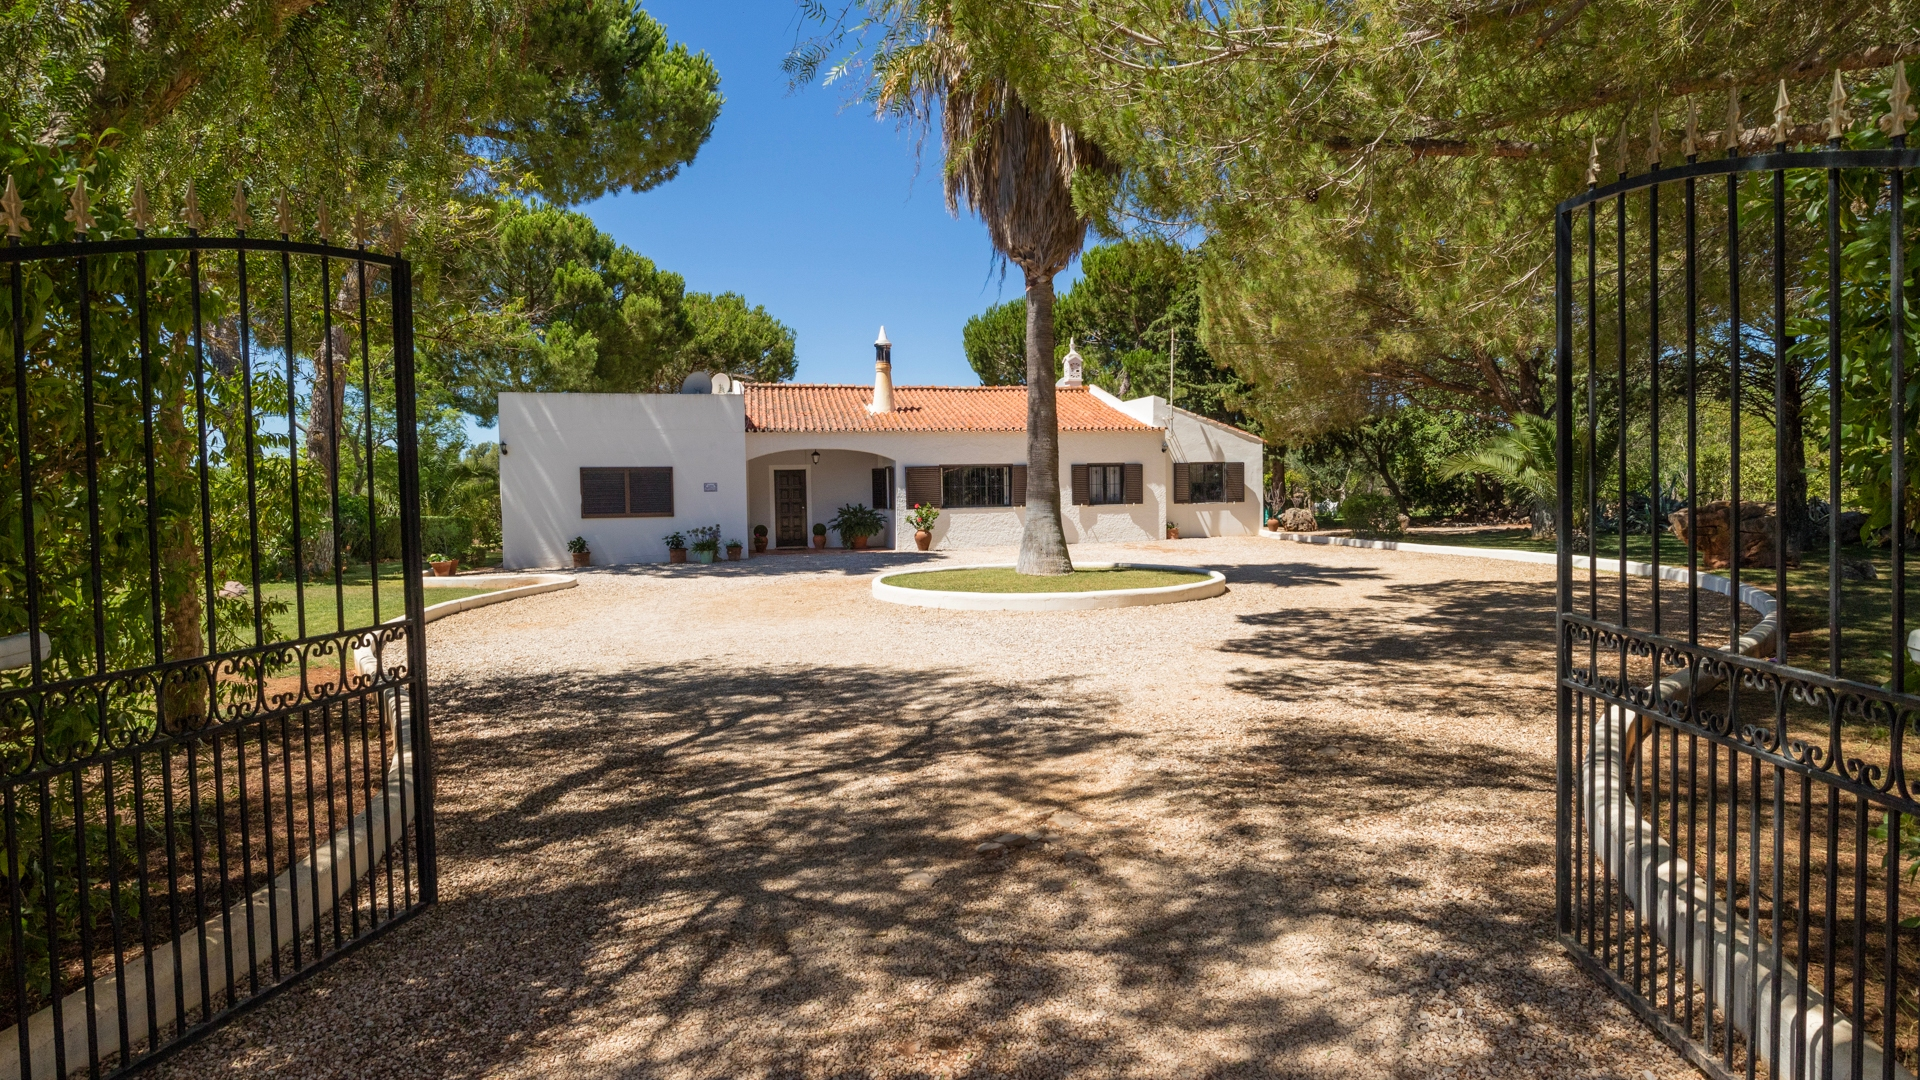 Charming 3 Bedroom Villa with Pool in Peaceful Area near Paderne | VM1175 This 3-bedroom property oozes charm, located in the countryside, yet not isolated and close to all amenities, near Paderne. A one level villa with private pool, perfect for retirement or a holiday home.